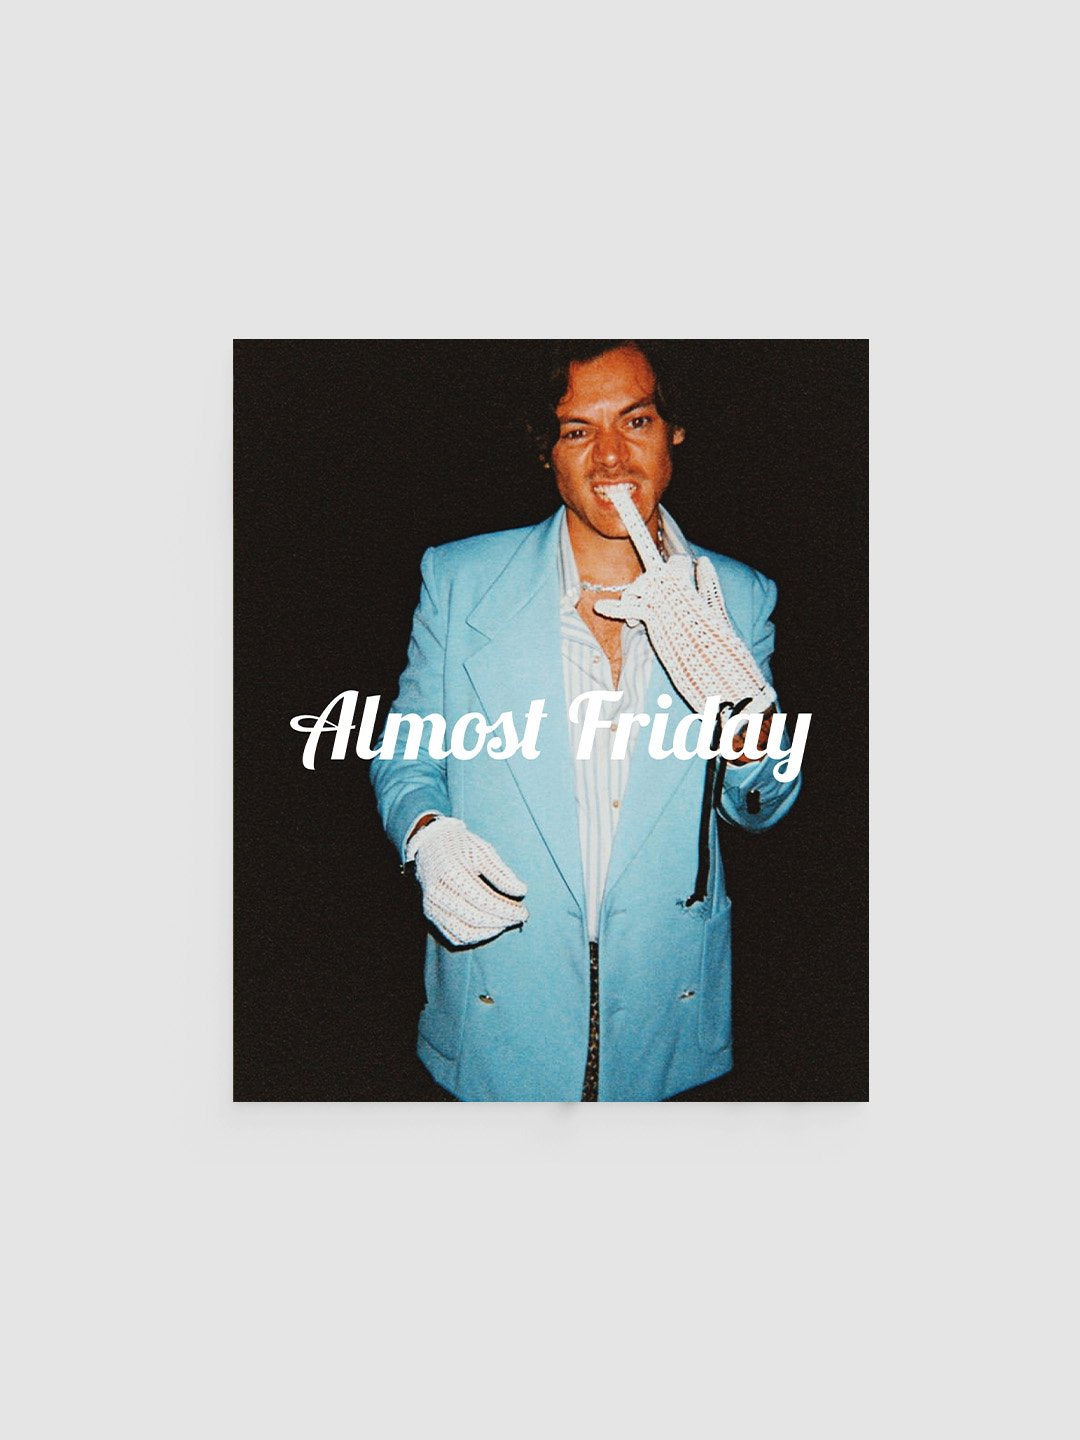 Almost Friday White Glove Poster